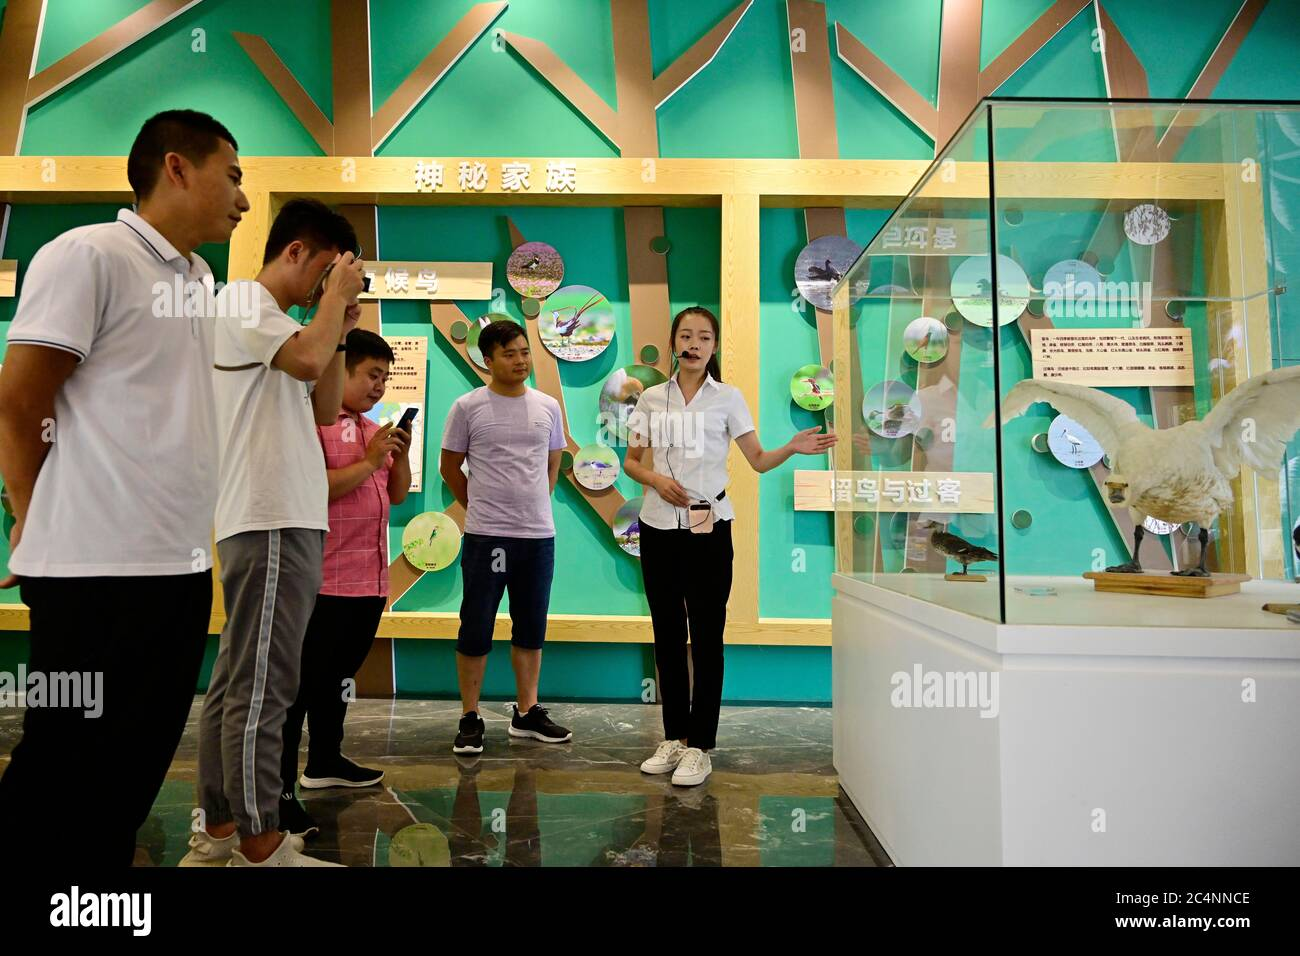 (200628) -- NANCHANG, June 28, 2020 (Xinhua) -- Tourists are briefed on migratory birds in the Poyang Lake wetlands at a museum in the Poyang Lake scenic area in Yugan County, east China's Jiangxi Province, June 16, 2020. China began a 10-year fishing moratorium from the beginning of this year in 332 conservation areas in the Yangtze River basin, which will be expanded to all the natural waterways of the country's longest river and its major tributaries from no later than Jan. 1, 2021.  This comes after decades of human activities such as water pollution, overfishing, sand excavation and quarr Stock Photo